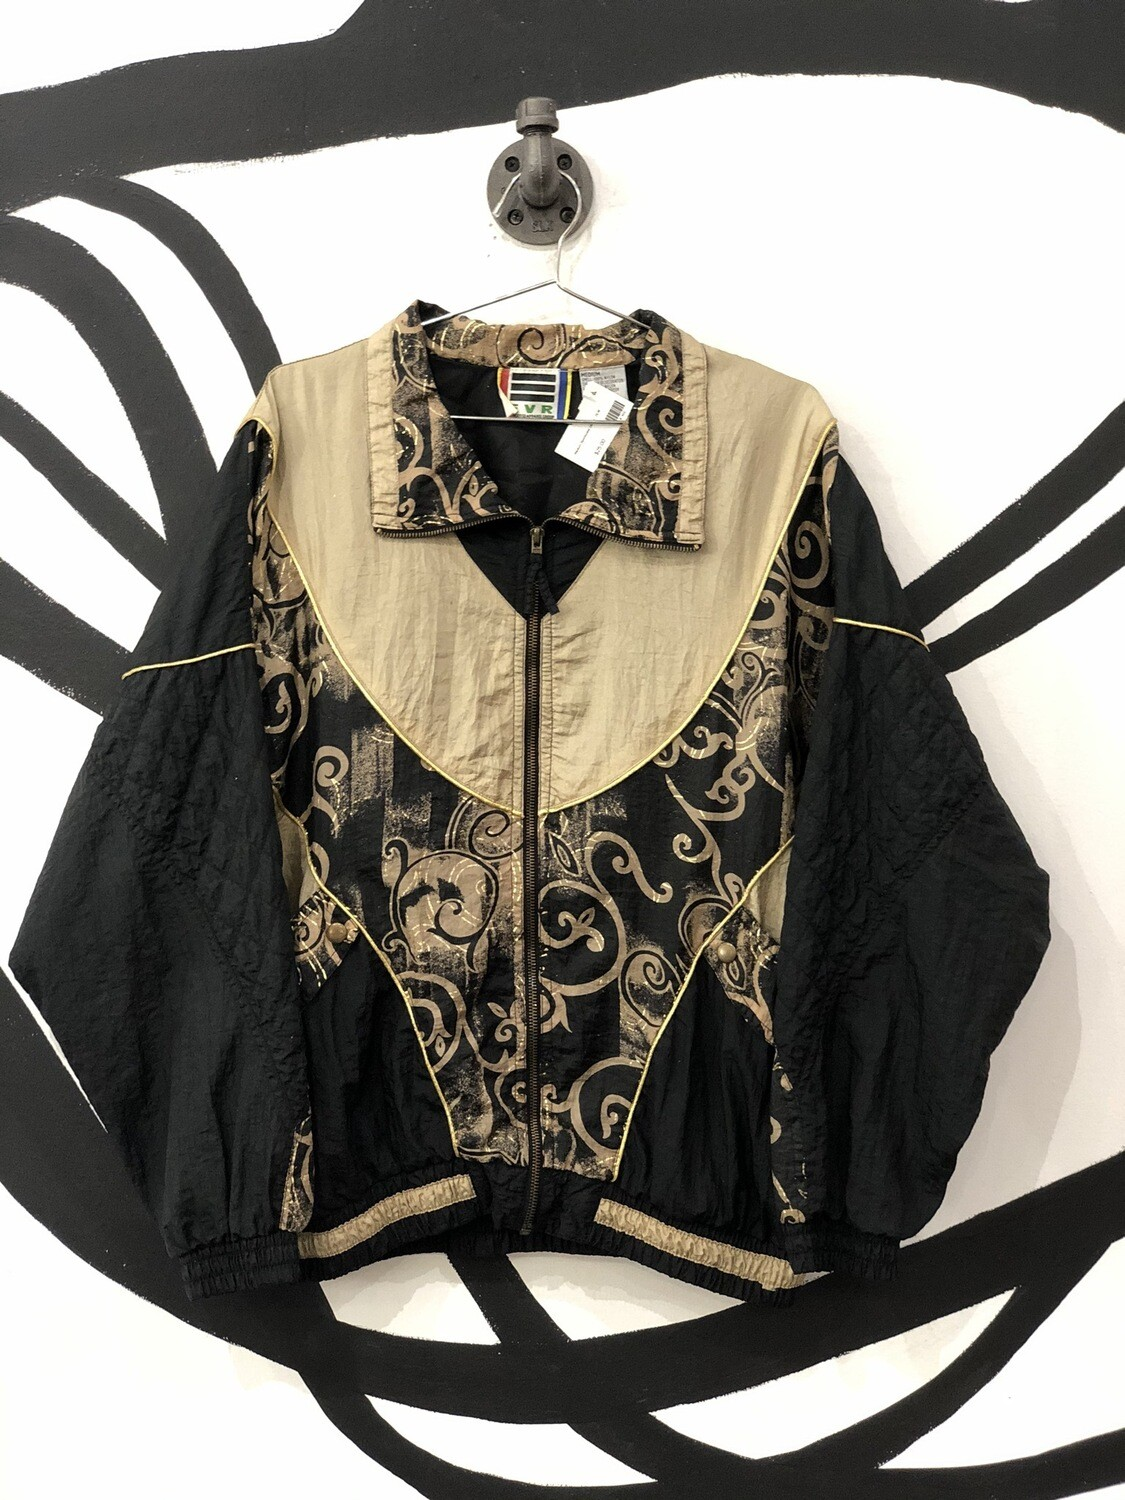 EVR Gold Detailed Zip-Up Windbreaker Size M